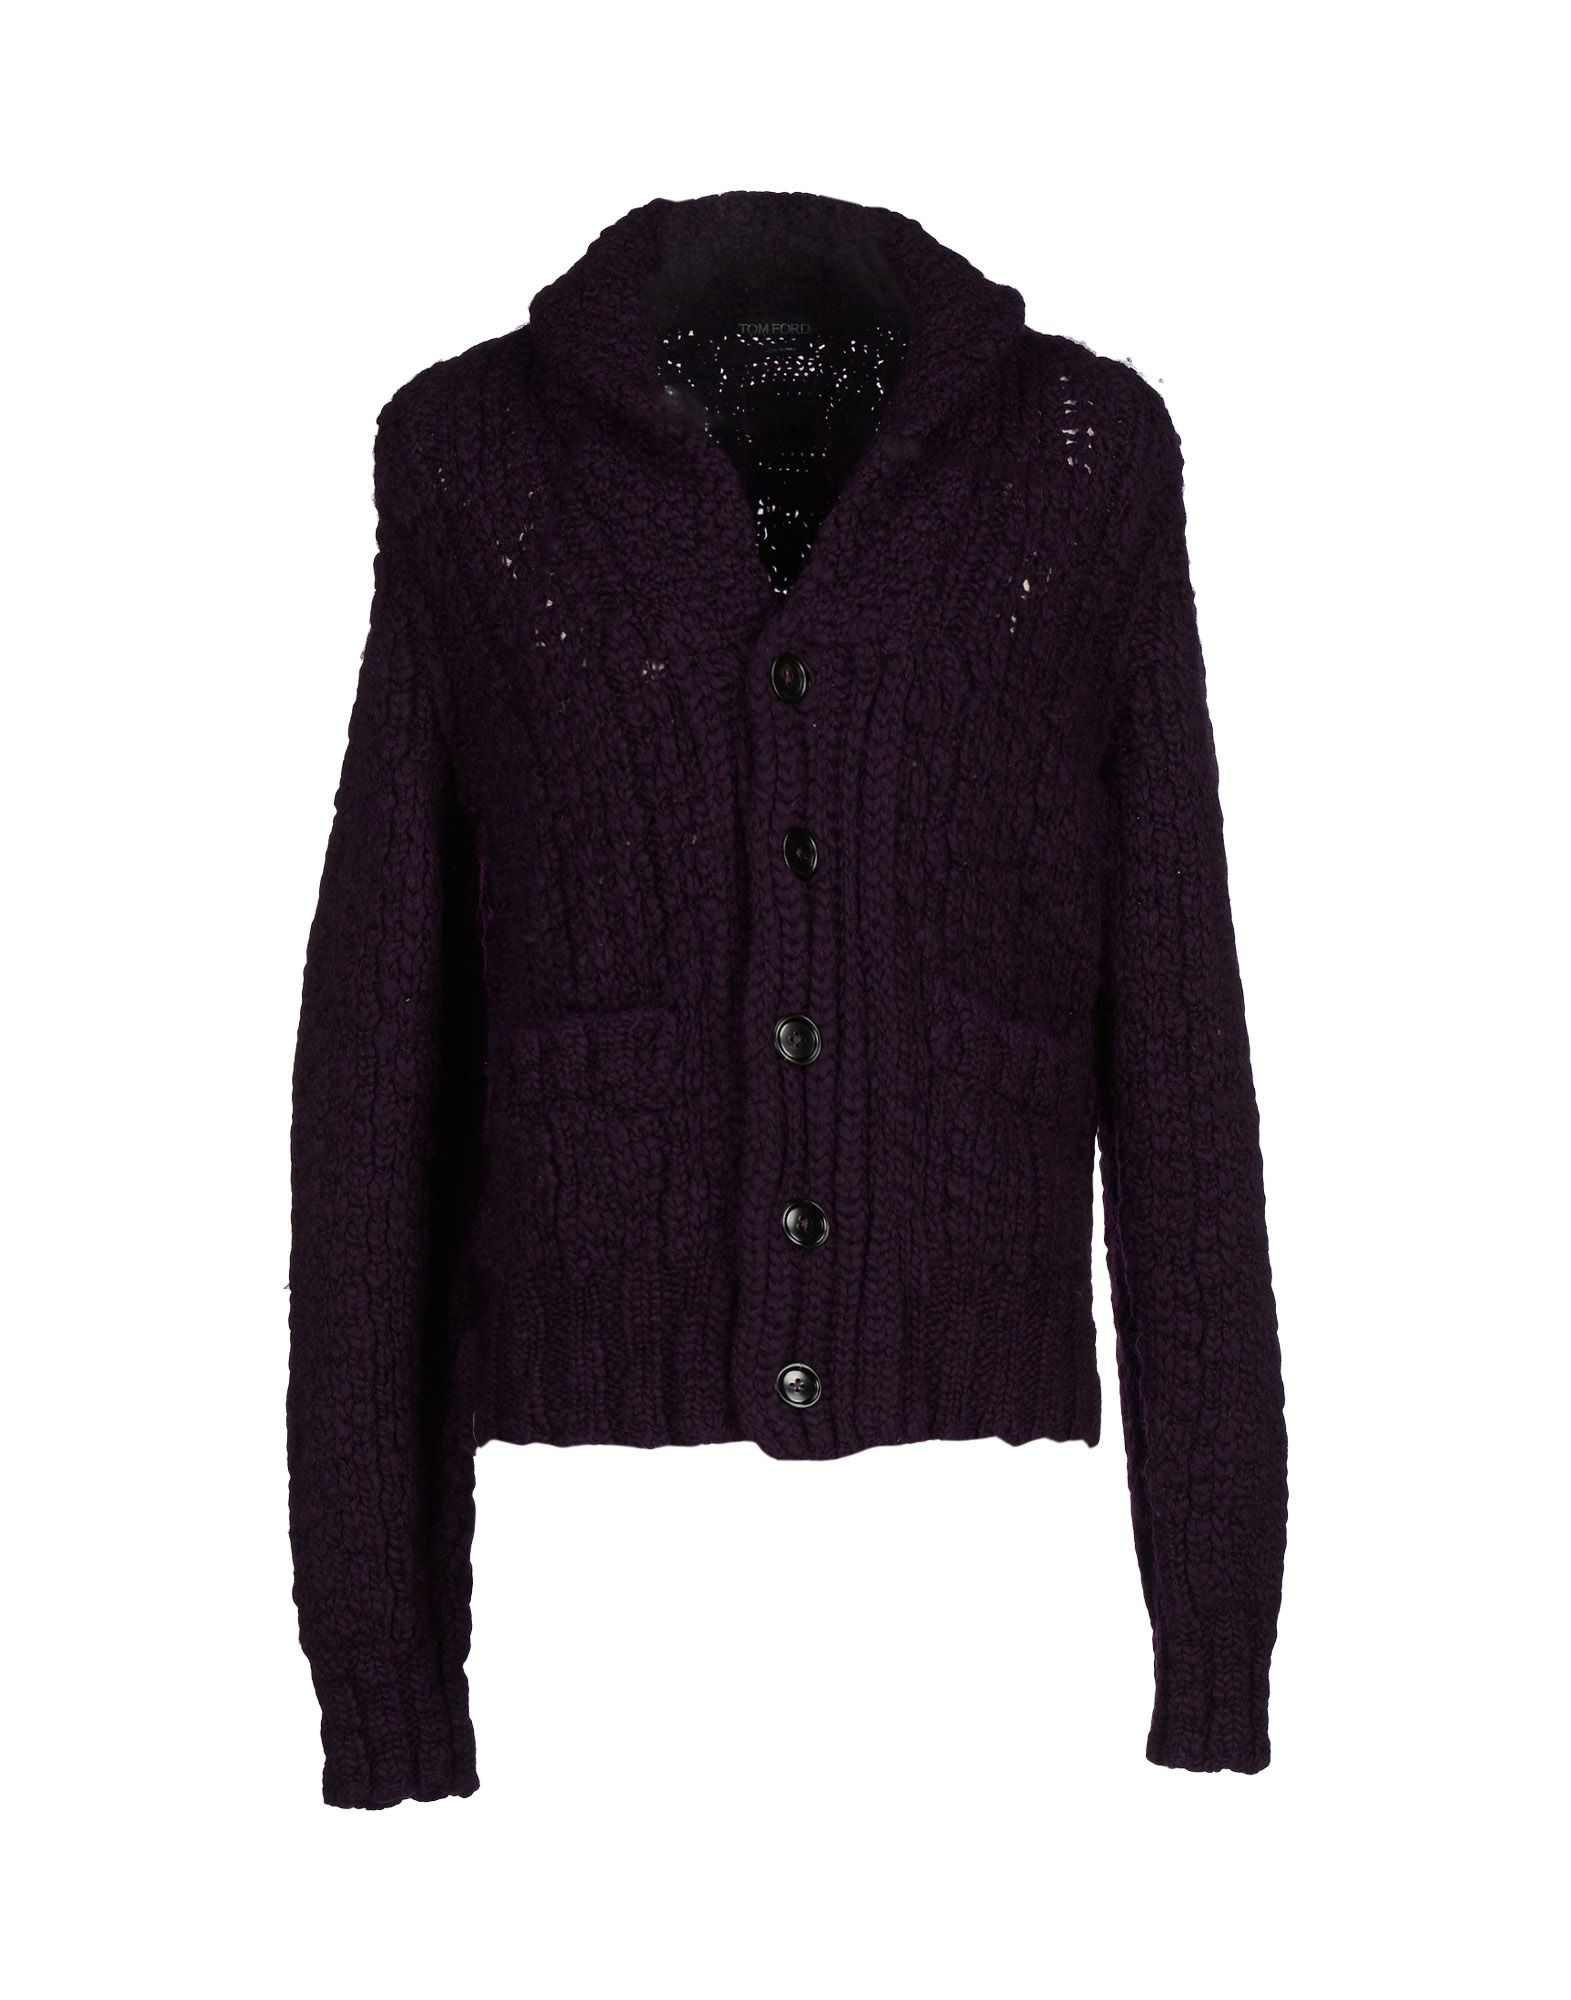 Tom Ford Cardigan 15